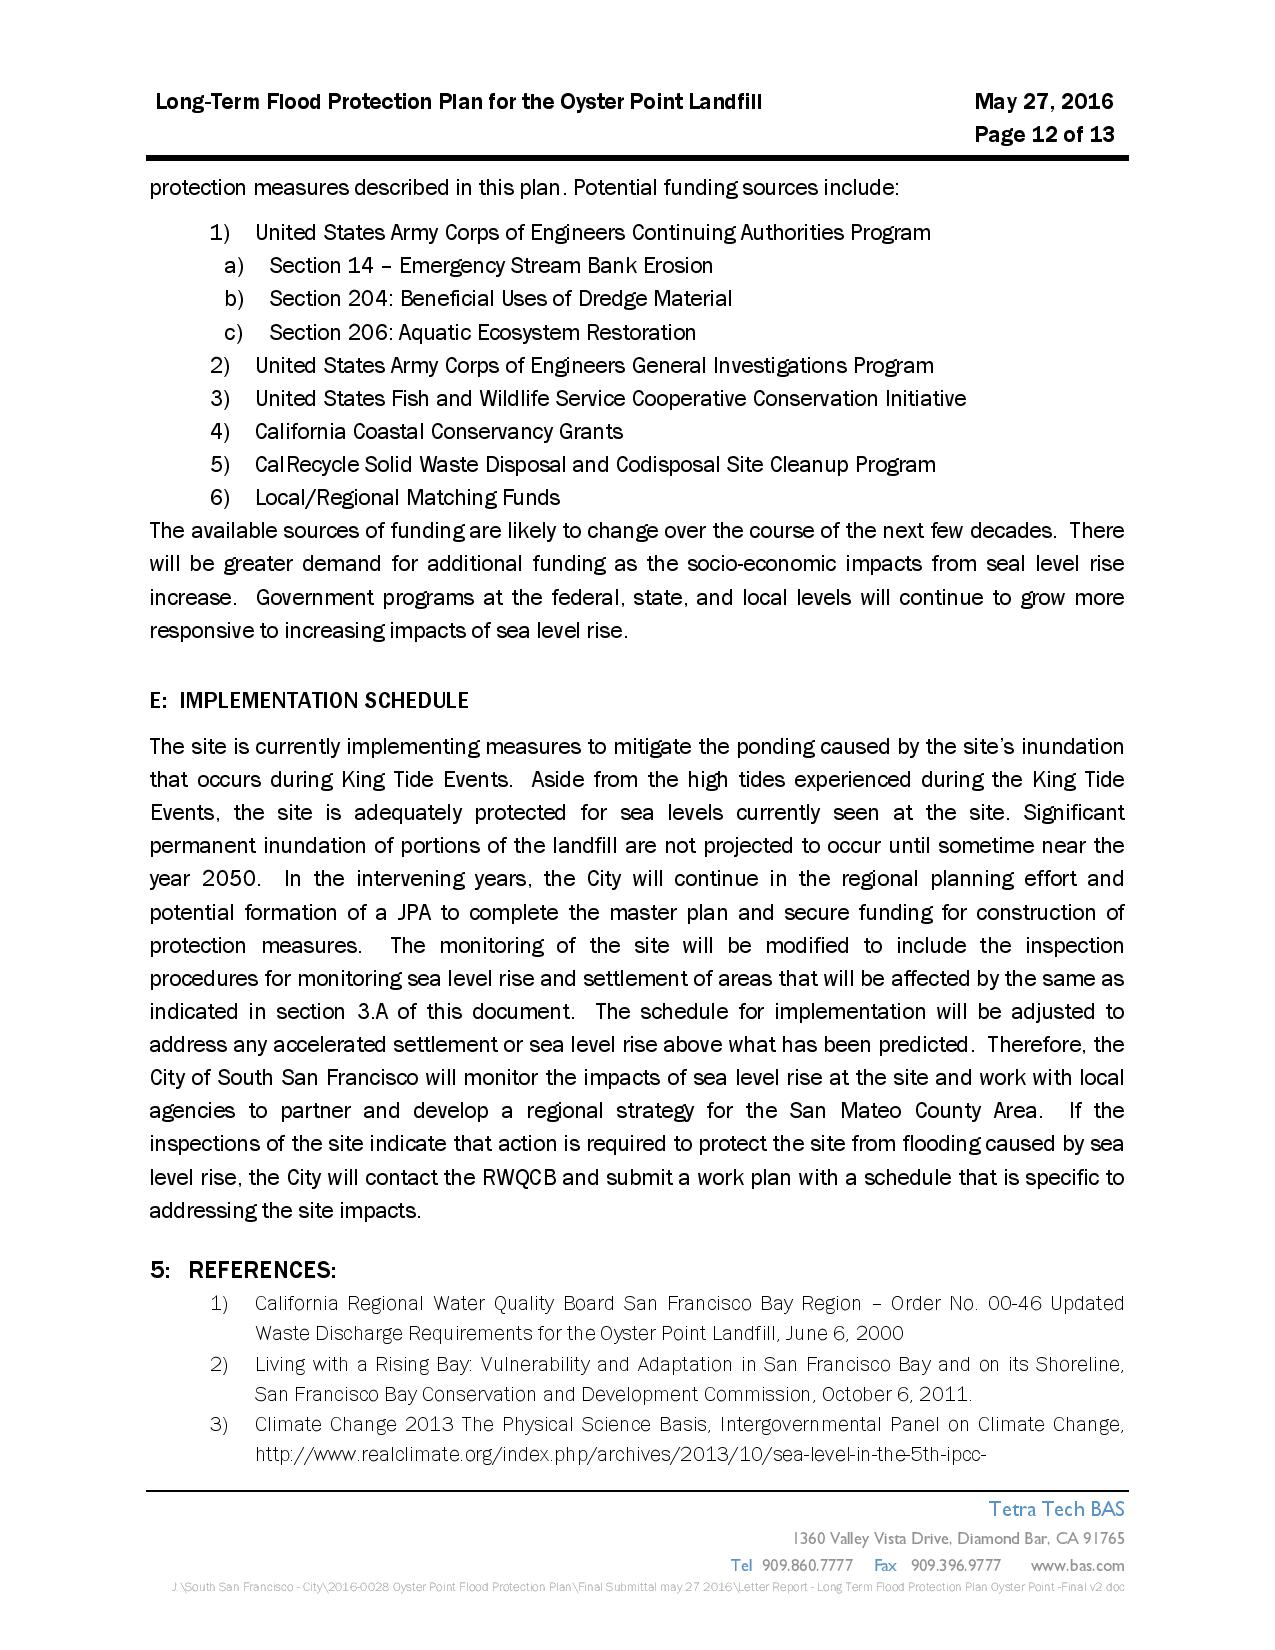 City of SSF Oyster Pt. Landfill Long-Term Flood Protection Letter & Plan-2-page-014